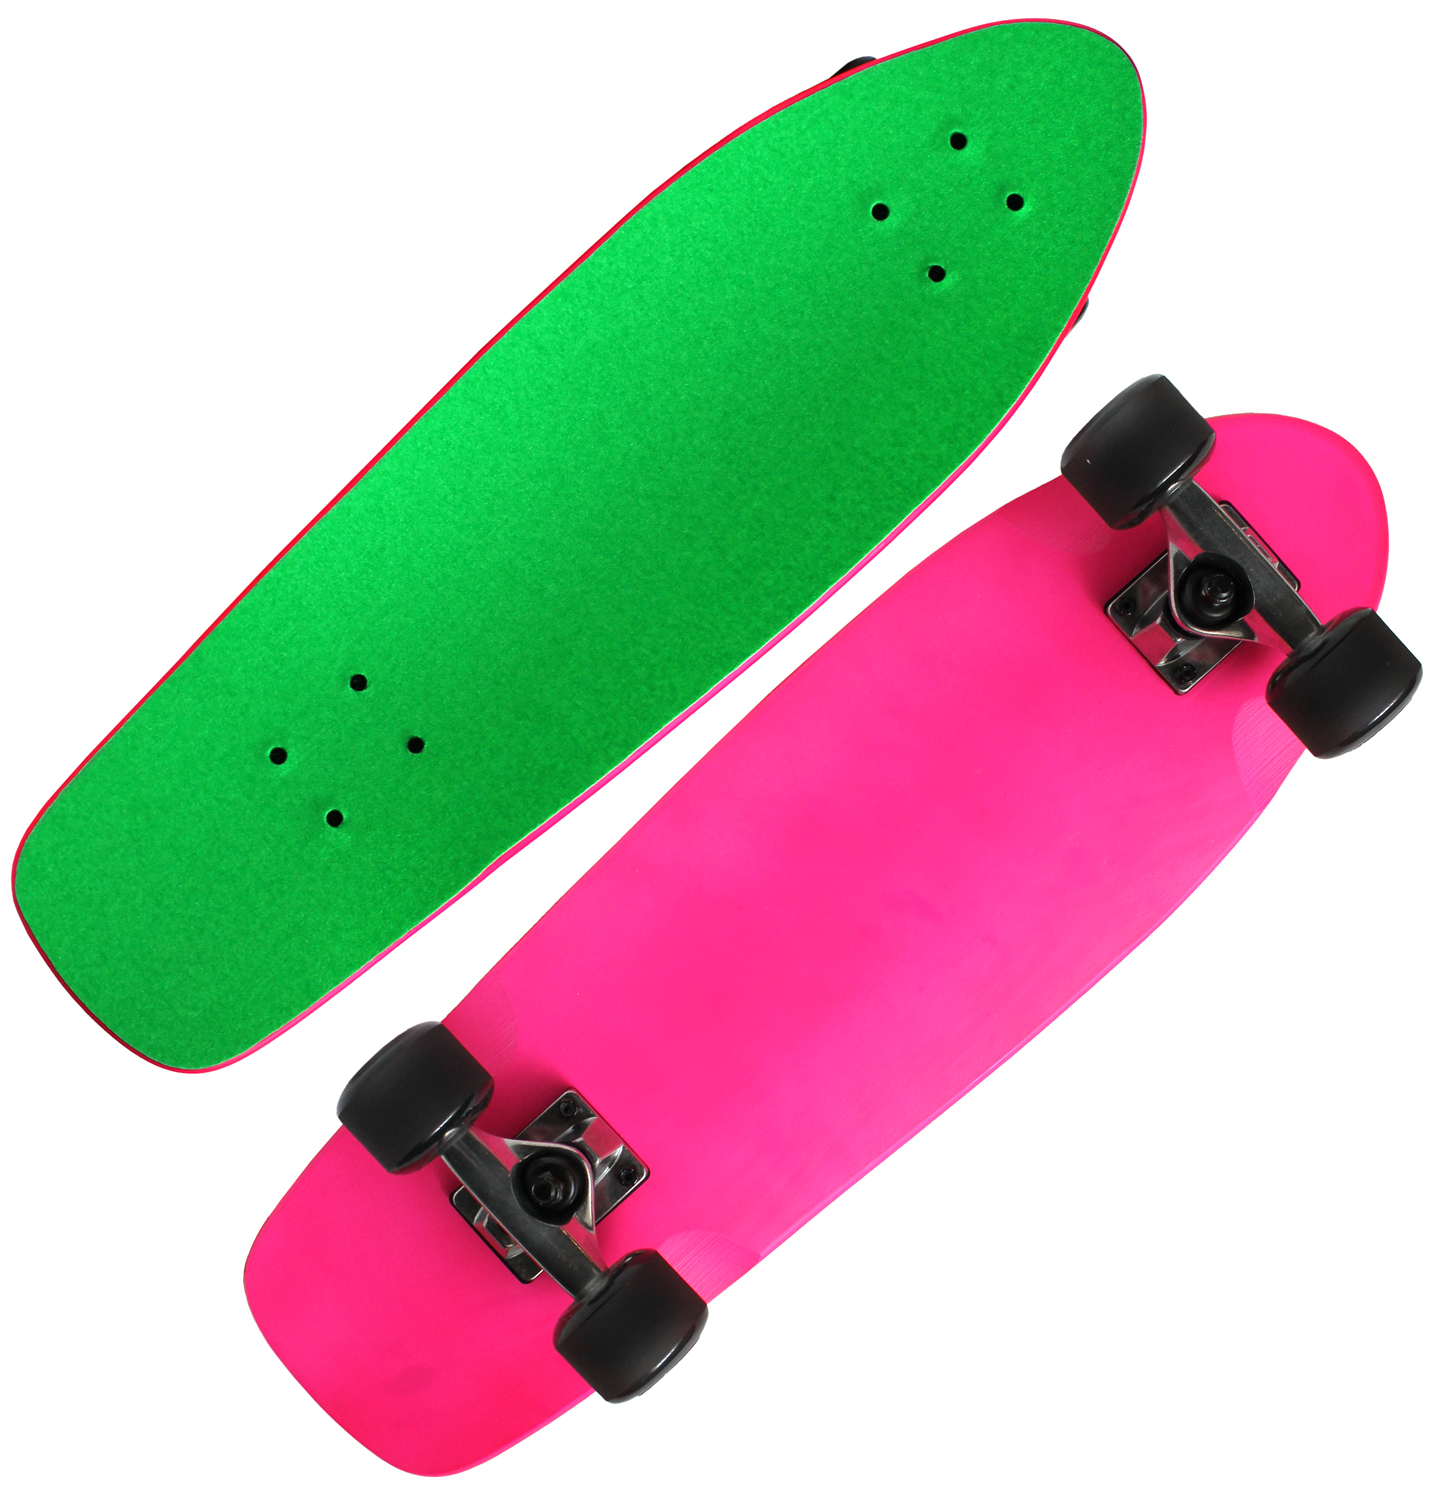 PINK & GREEN BEACH CRUISER SKATEBOARD COMPLETE Kicktail Mini Shape MAPLE 8x26.5